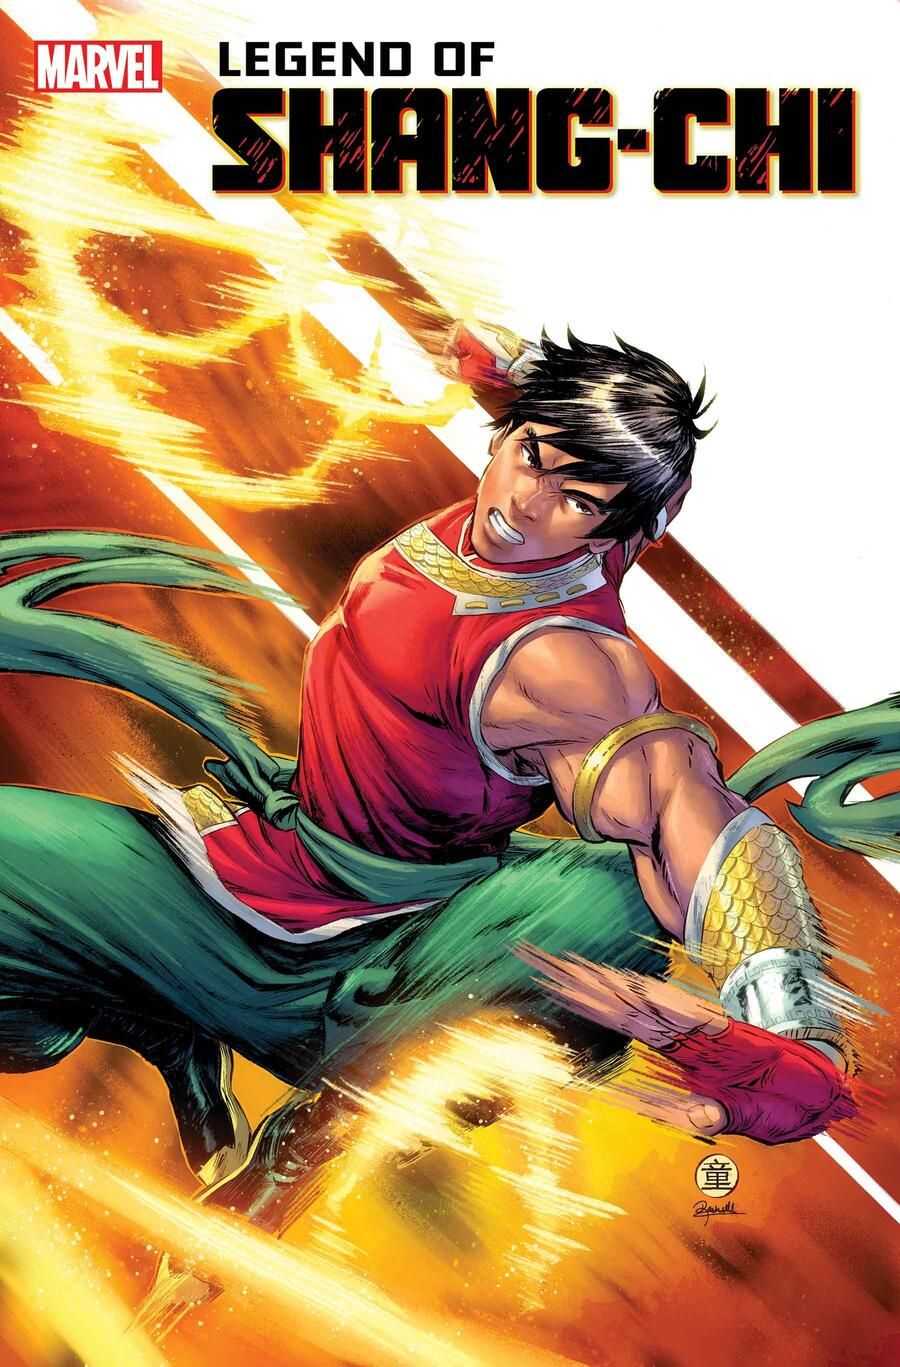 LEGEND OF SHANG-CHI #1 cover by Andie Tong